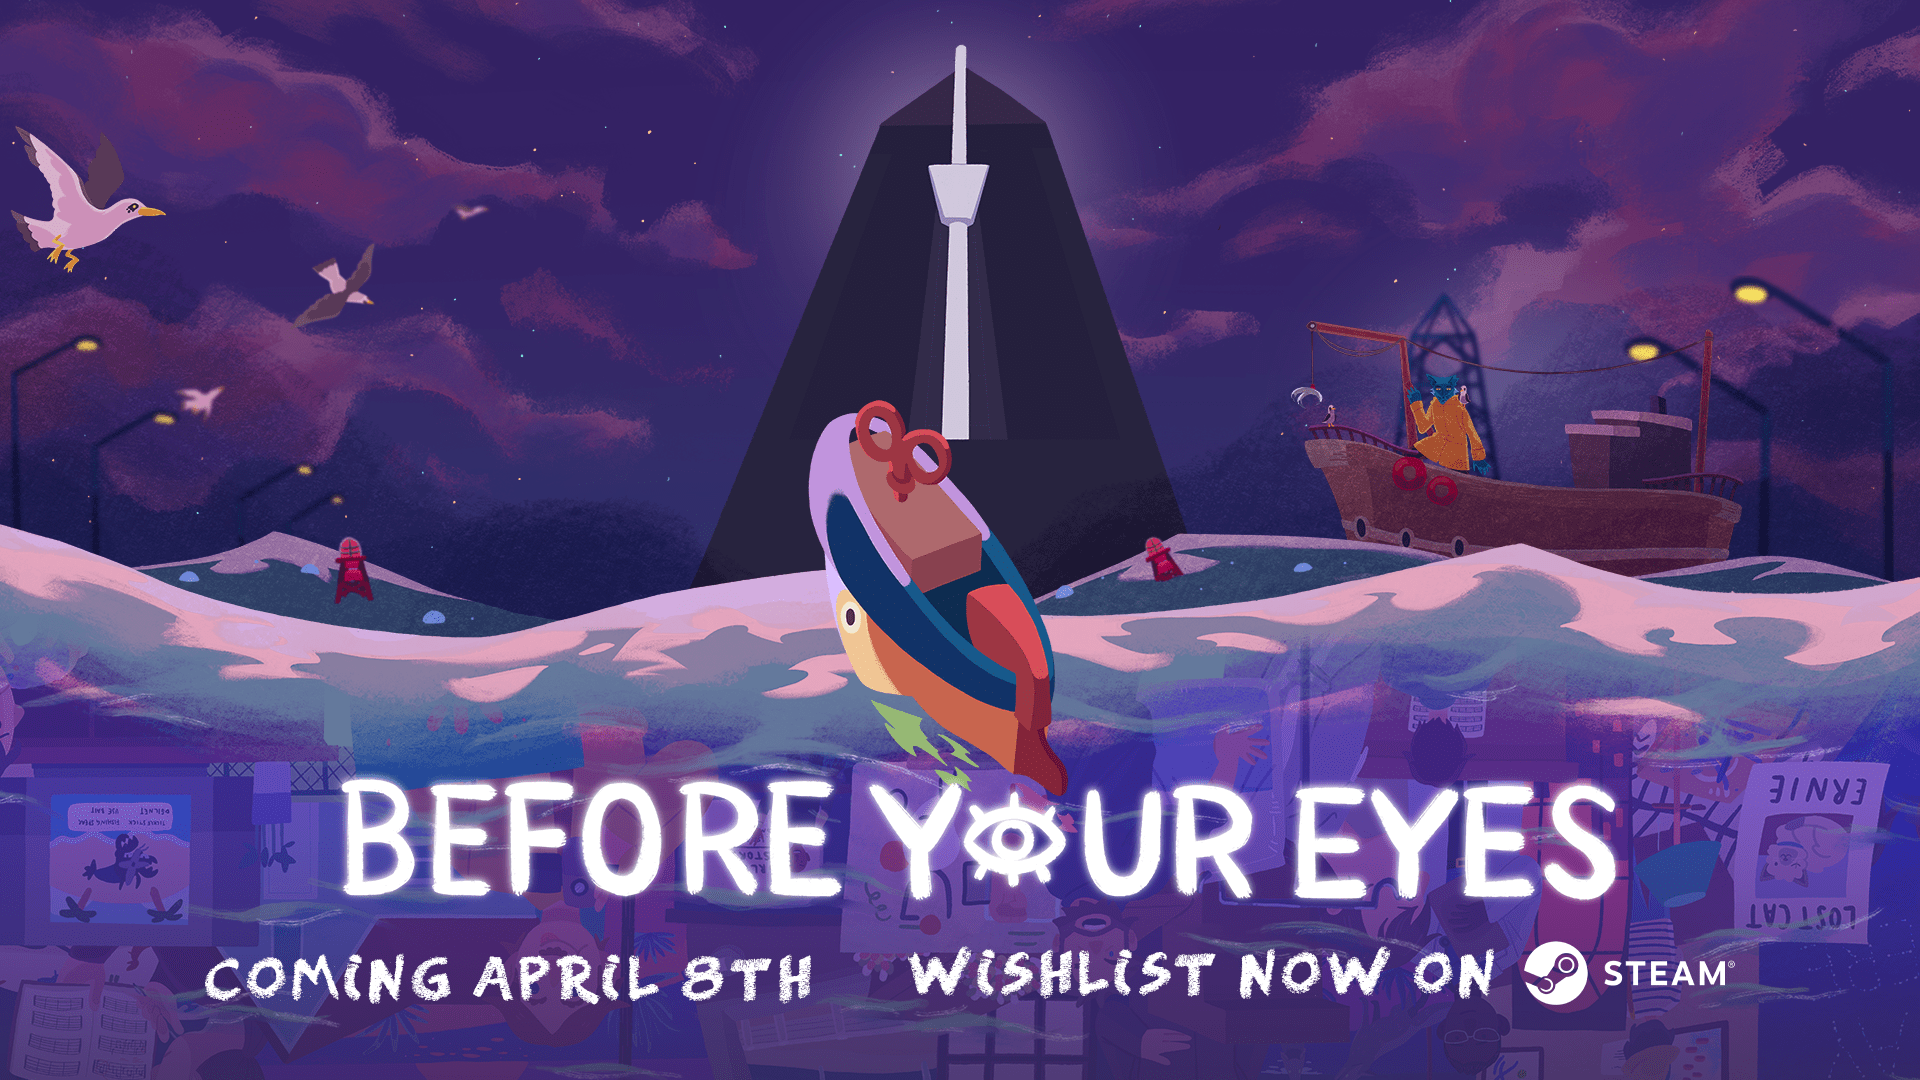 Before Your Eyes Poster